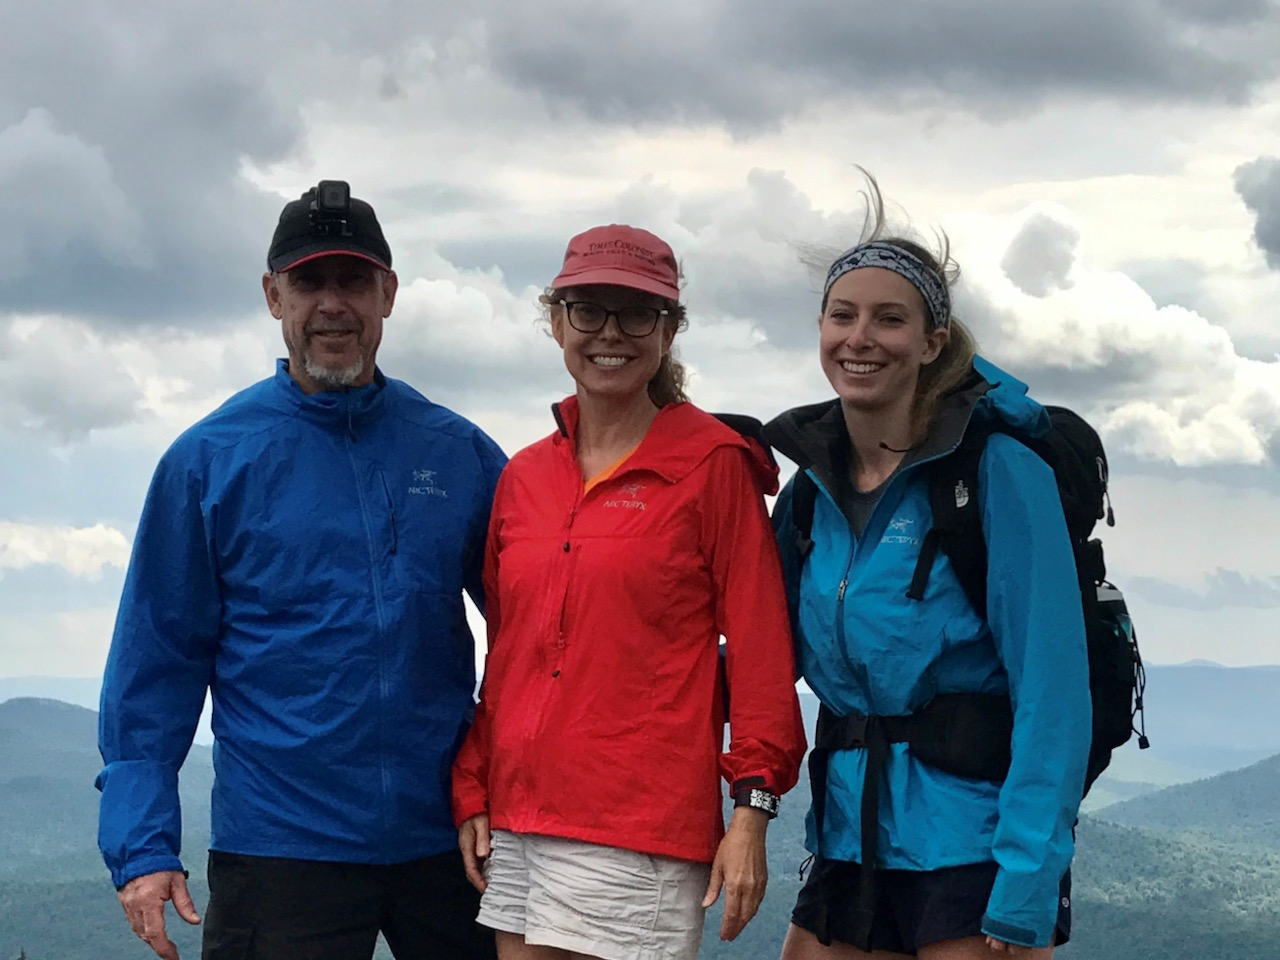 Image of three people in outdoor clothing posing for a photo